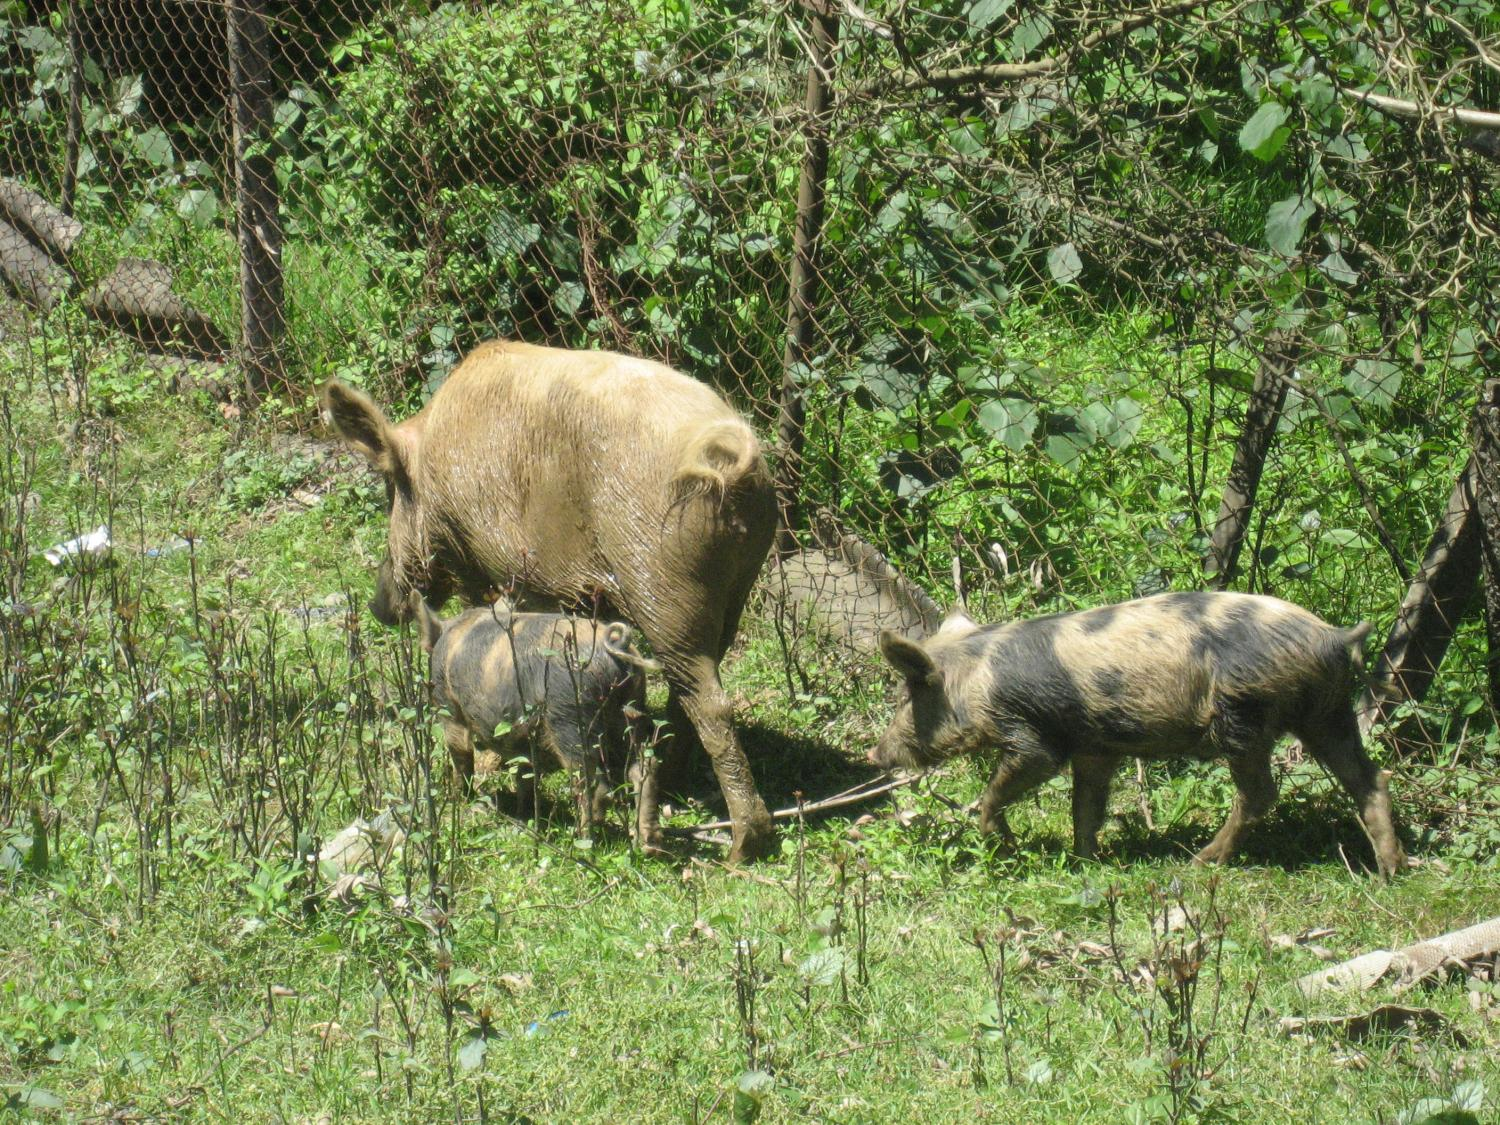 pig markets and traders could provide insight to controlling